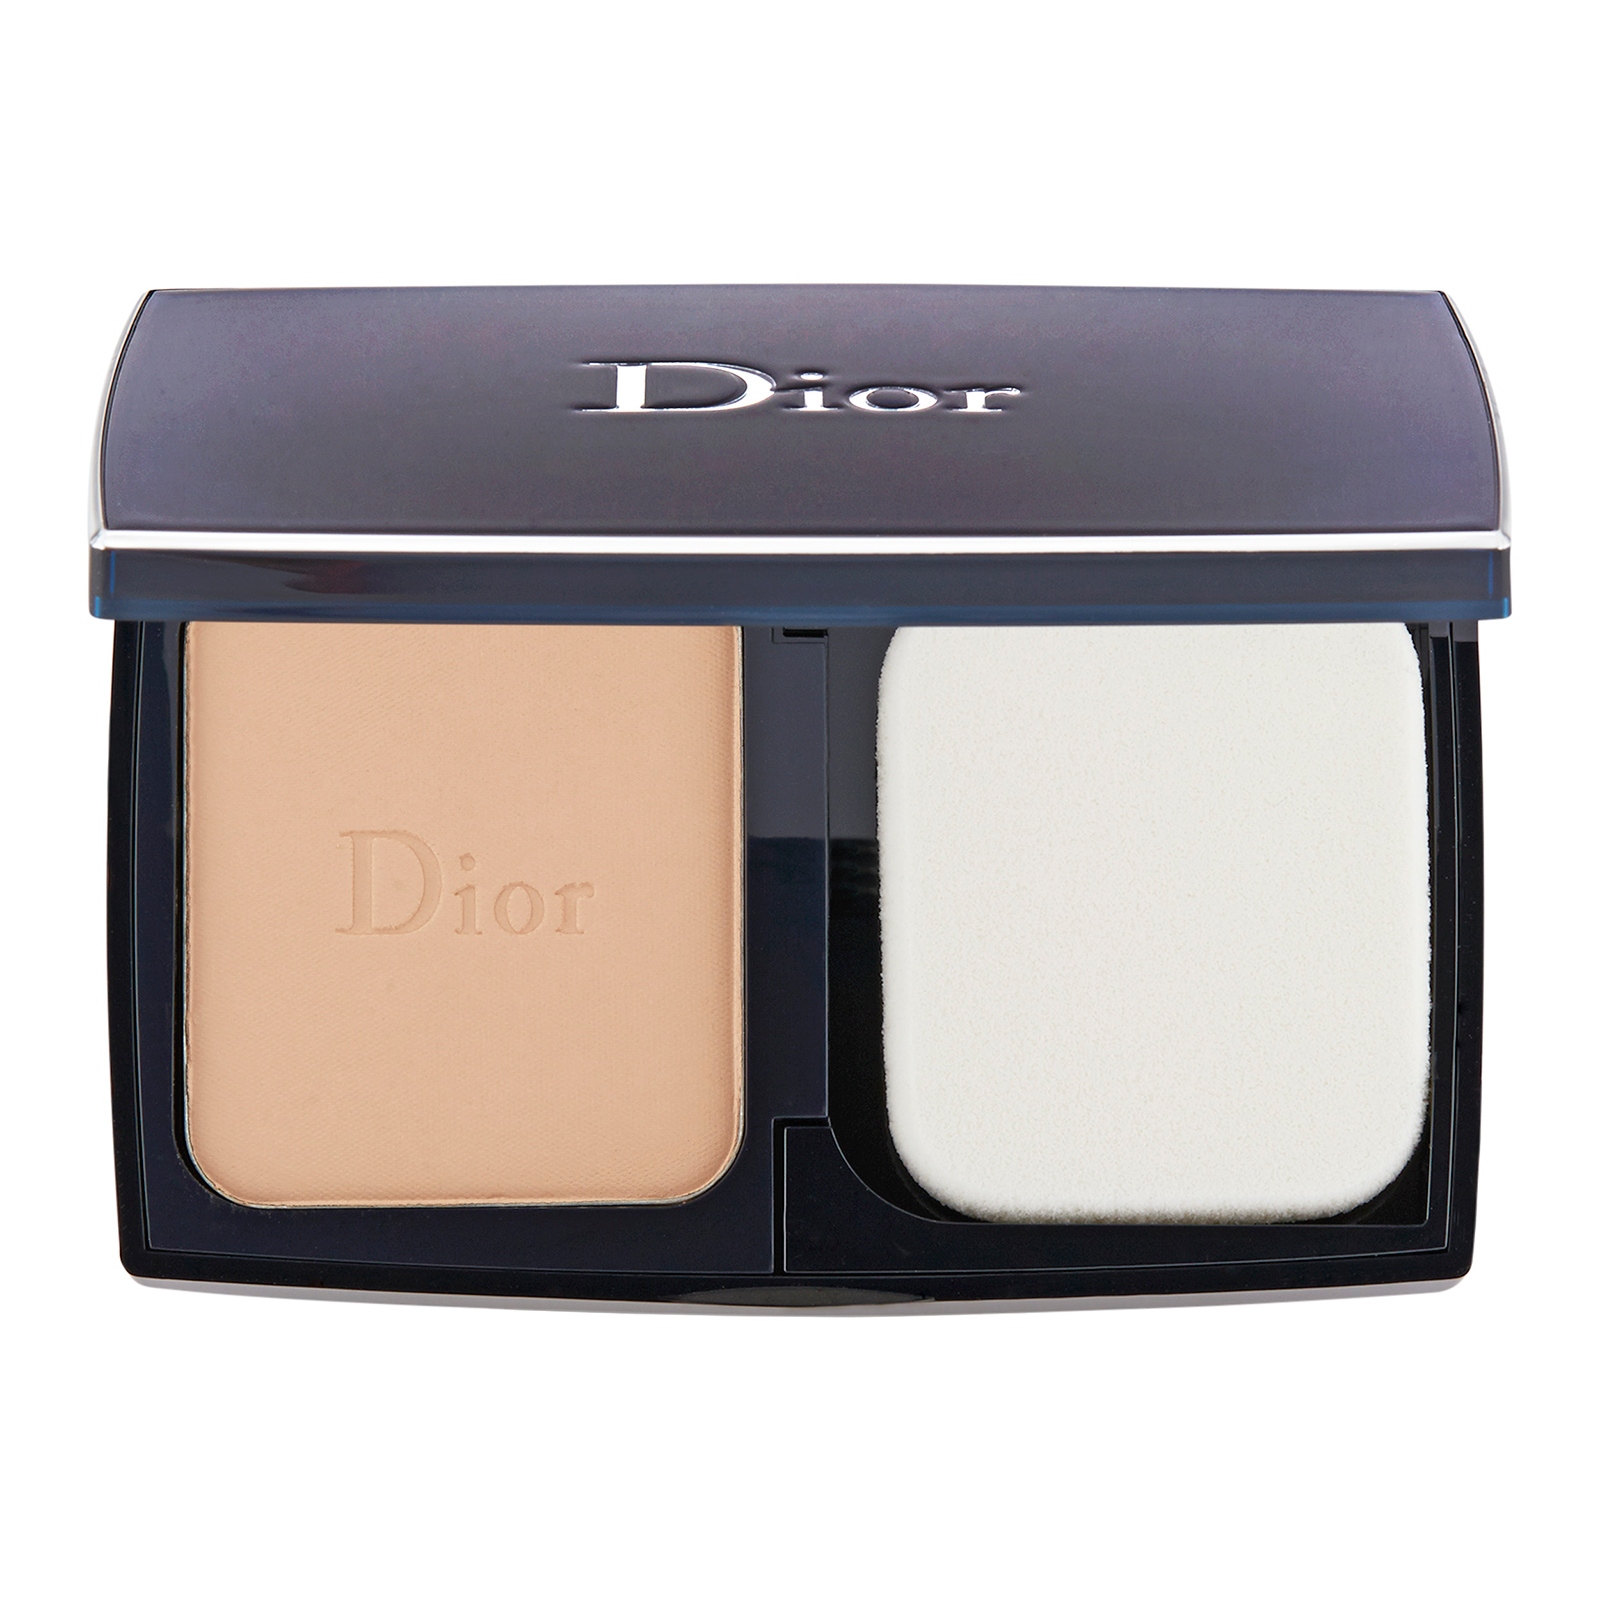 Christian Dior DiorSkin Forever Flawless Perfection Fusion Wear Makeup FPS 25 SPF / PA++ 010 Ivory, 0.35oz, 10g